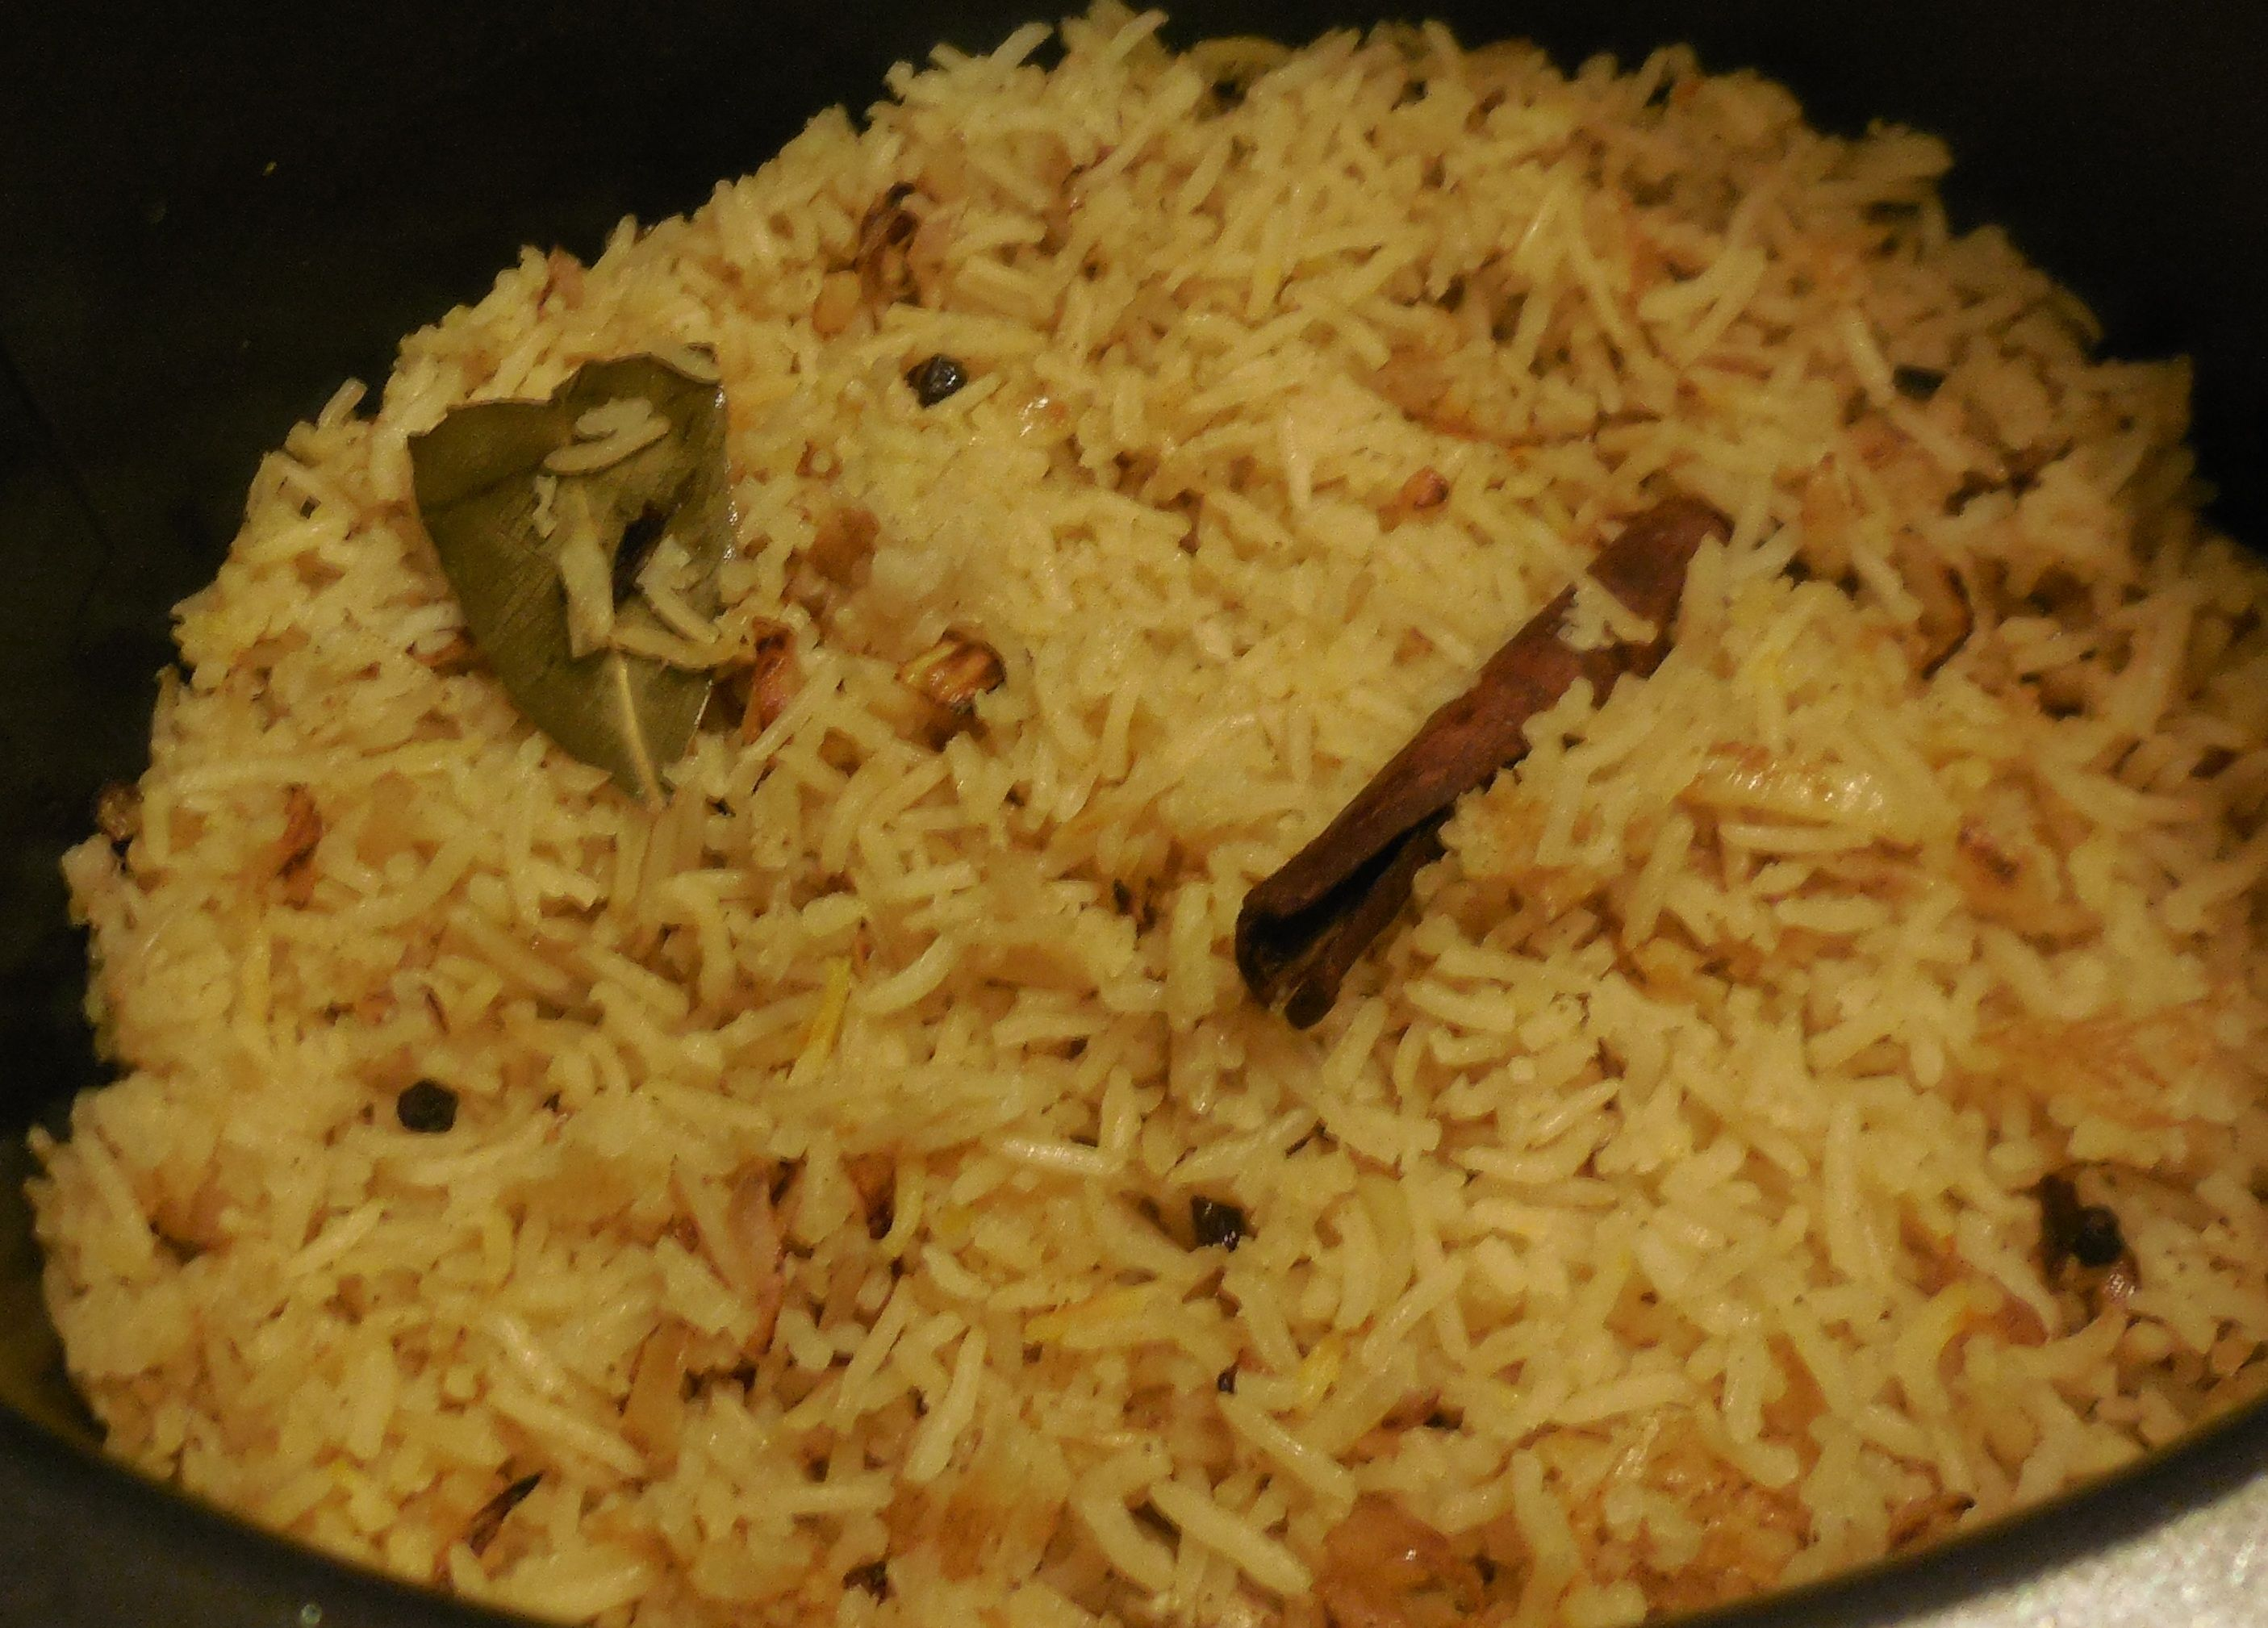 Slow cooker indian rice pilau grains pinterest cooker rice the slow cooker makes quick work of this fluffy basmati rice dish its good on its own and divine served with your favorite indian dishes forumfinder Image collections